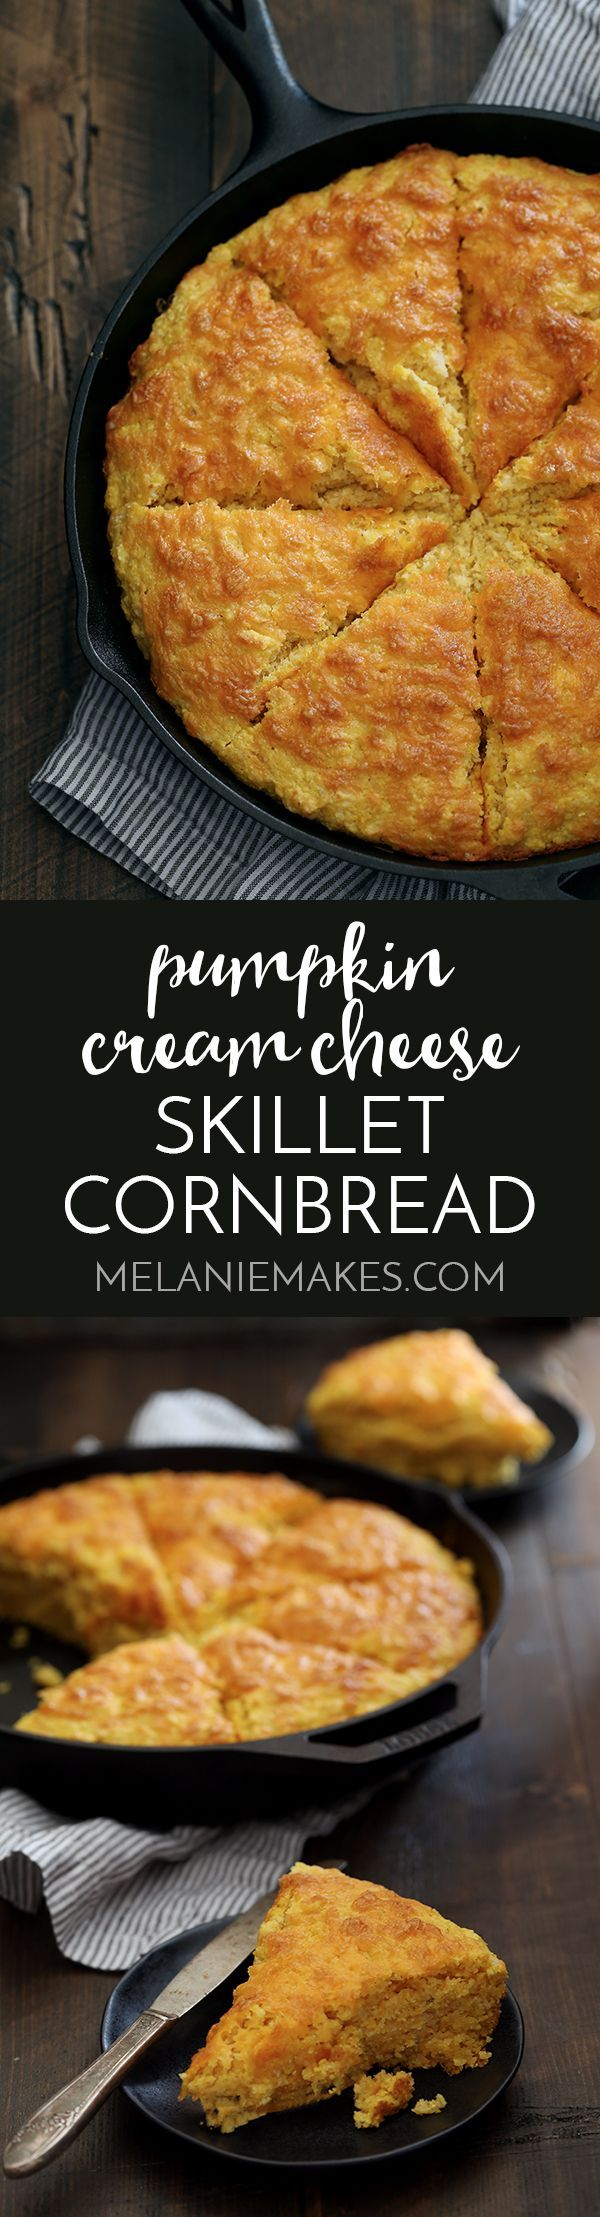 This thick Pumpkin Cream Cheese Skillet Cornbread is the perfect side dish for any fall meal. Pumpkin, cheddar and cream cheese are spiked with cinnamon and are the standout ingredients of this easy, savory bread.